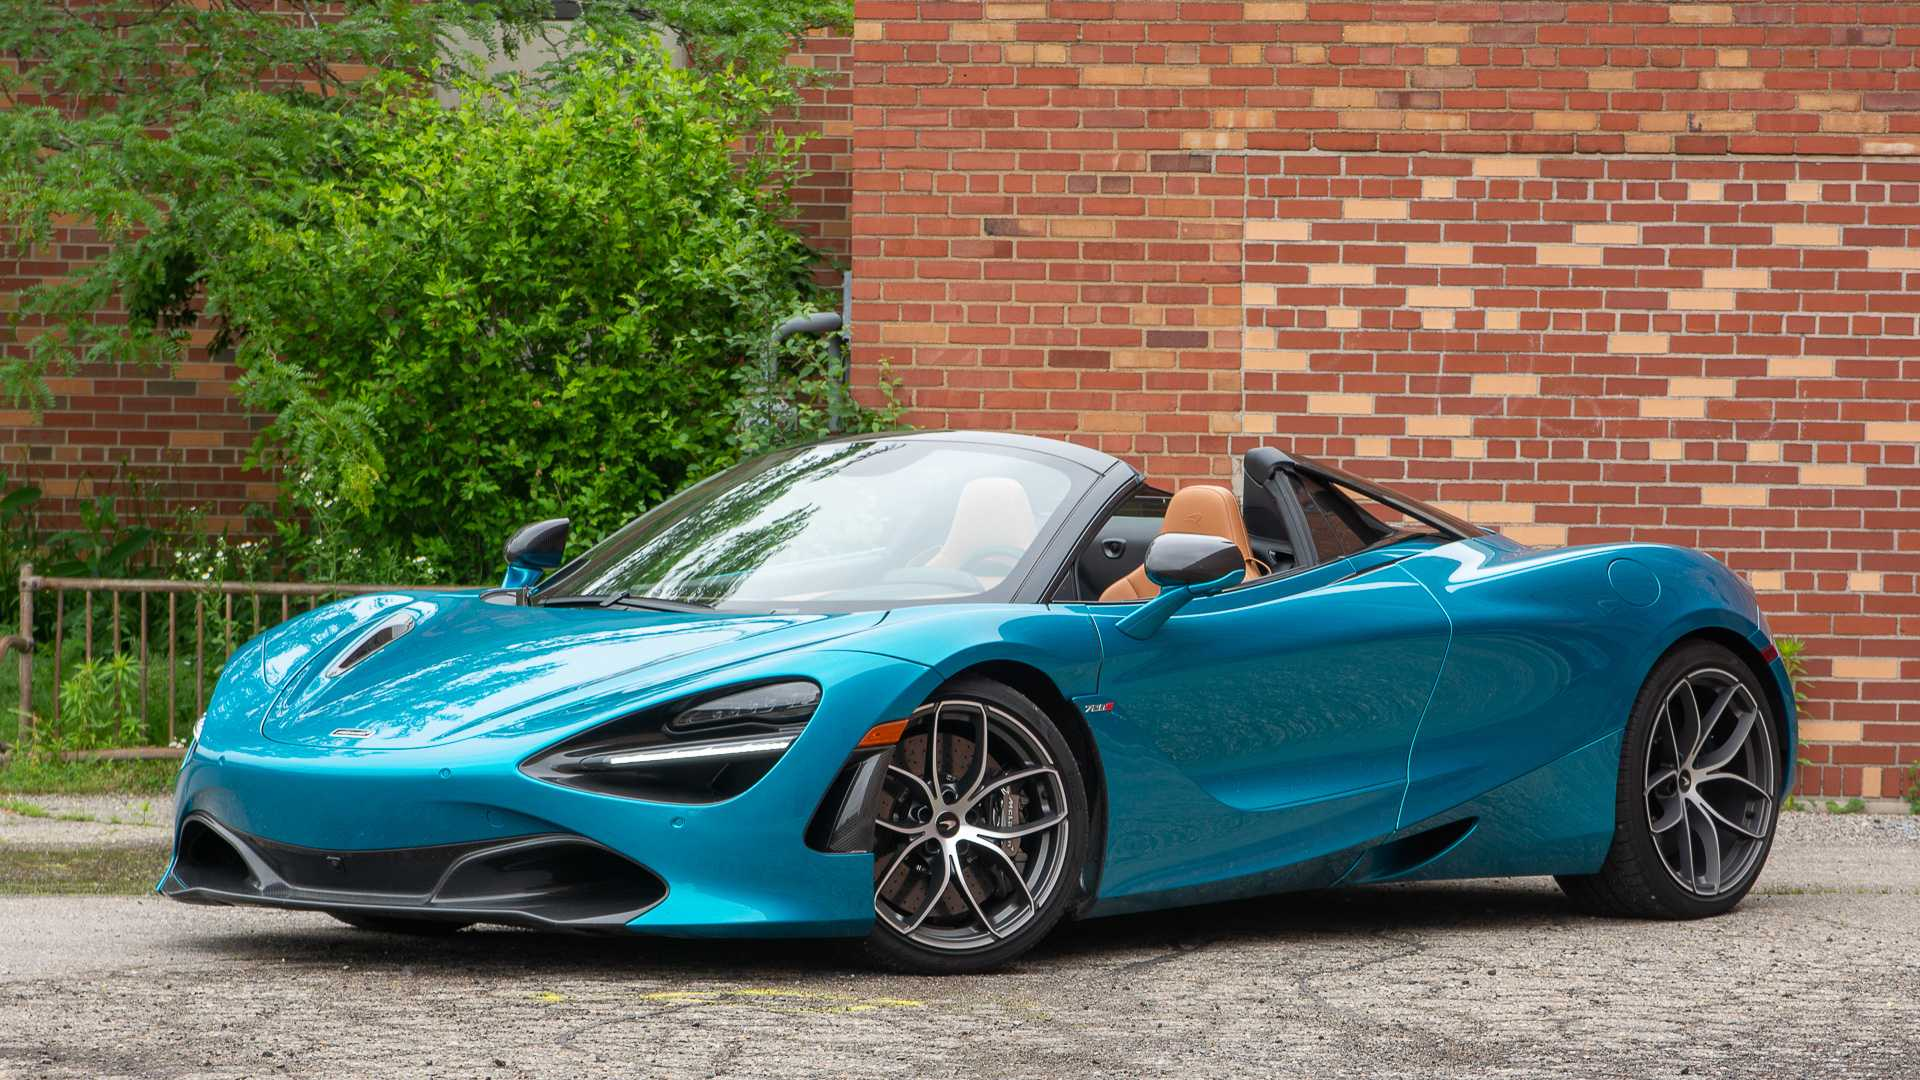 40 The Best 2020 Mclaren 720s Spider Images